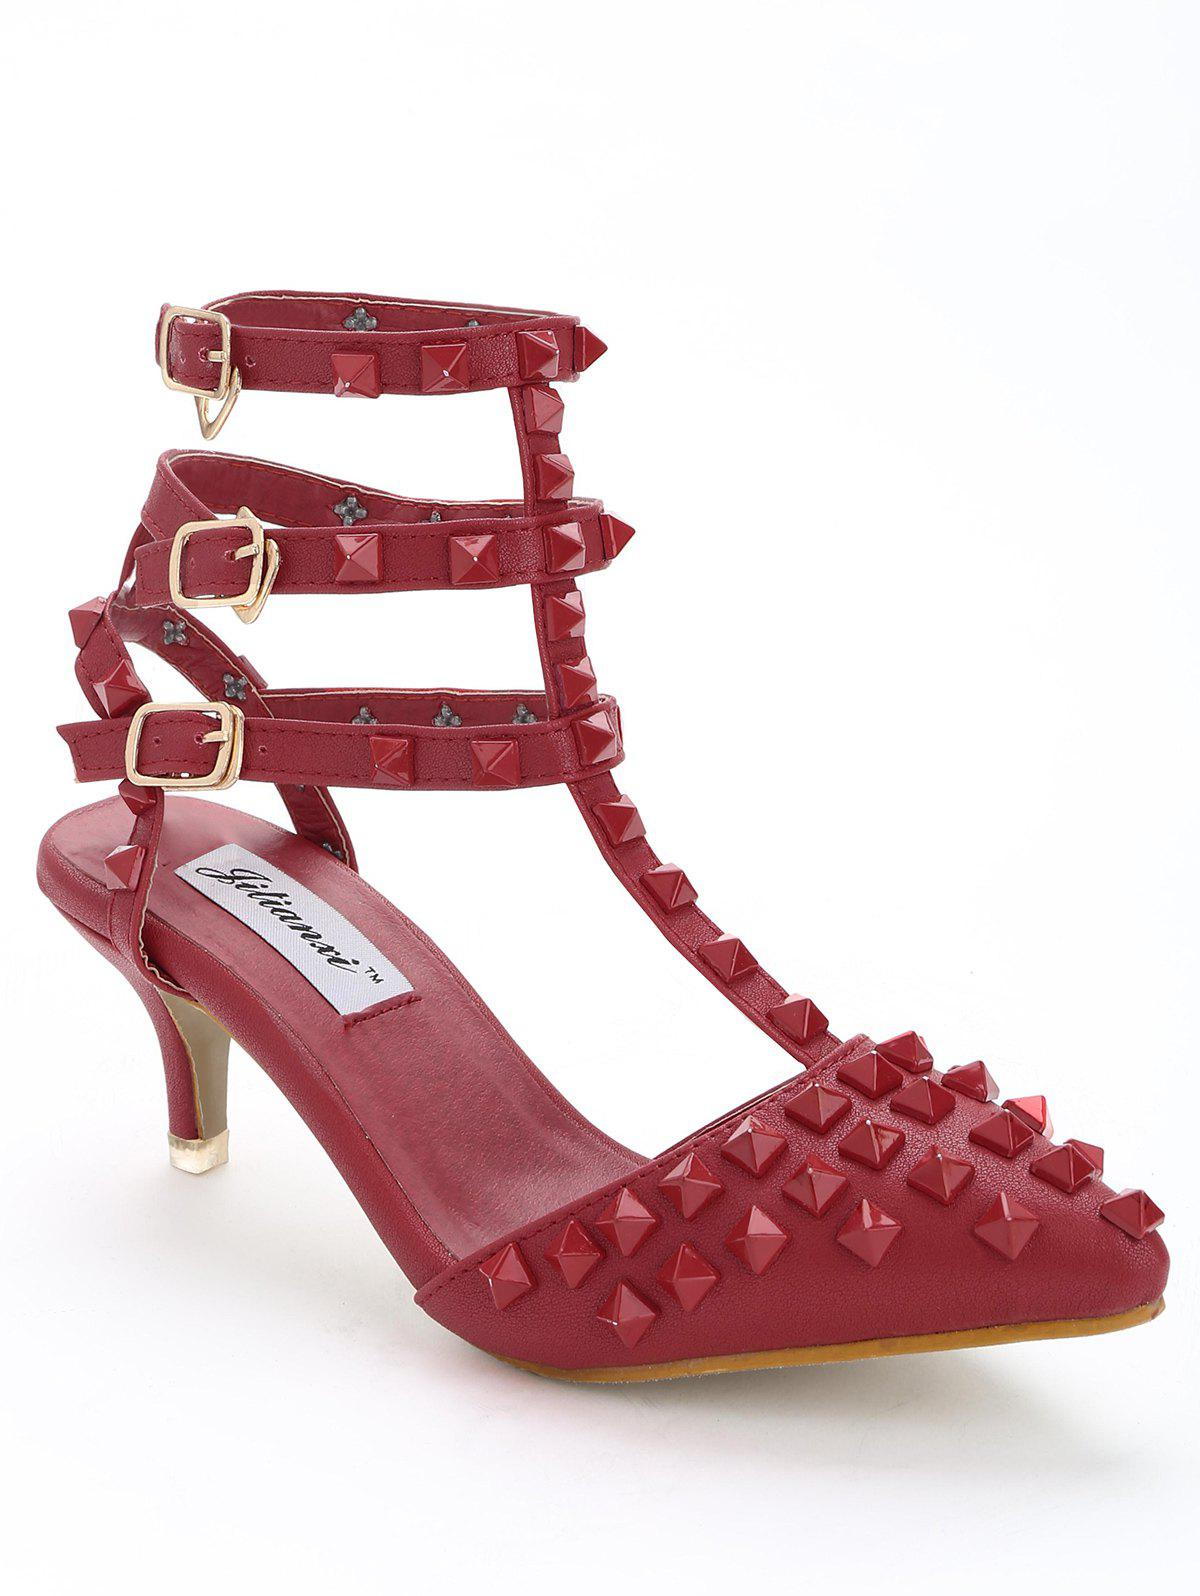 Studded Ankle Strap Stiletto Heel Sandals - RED 37